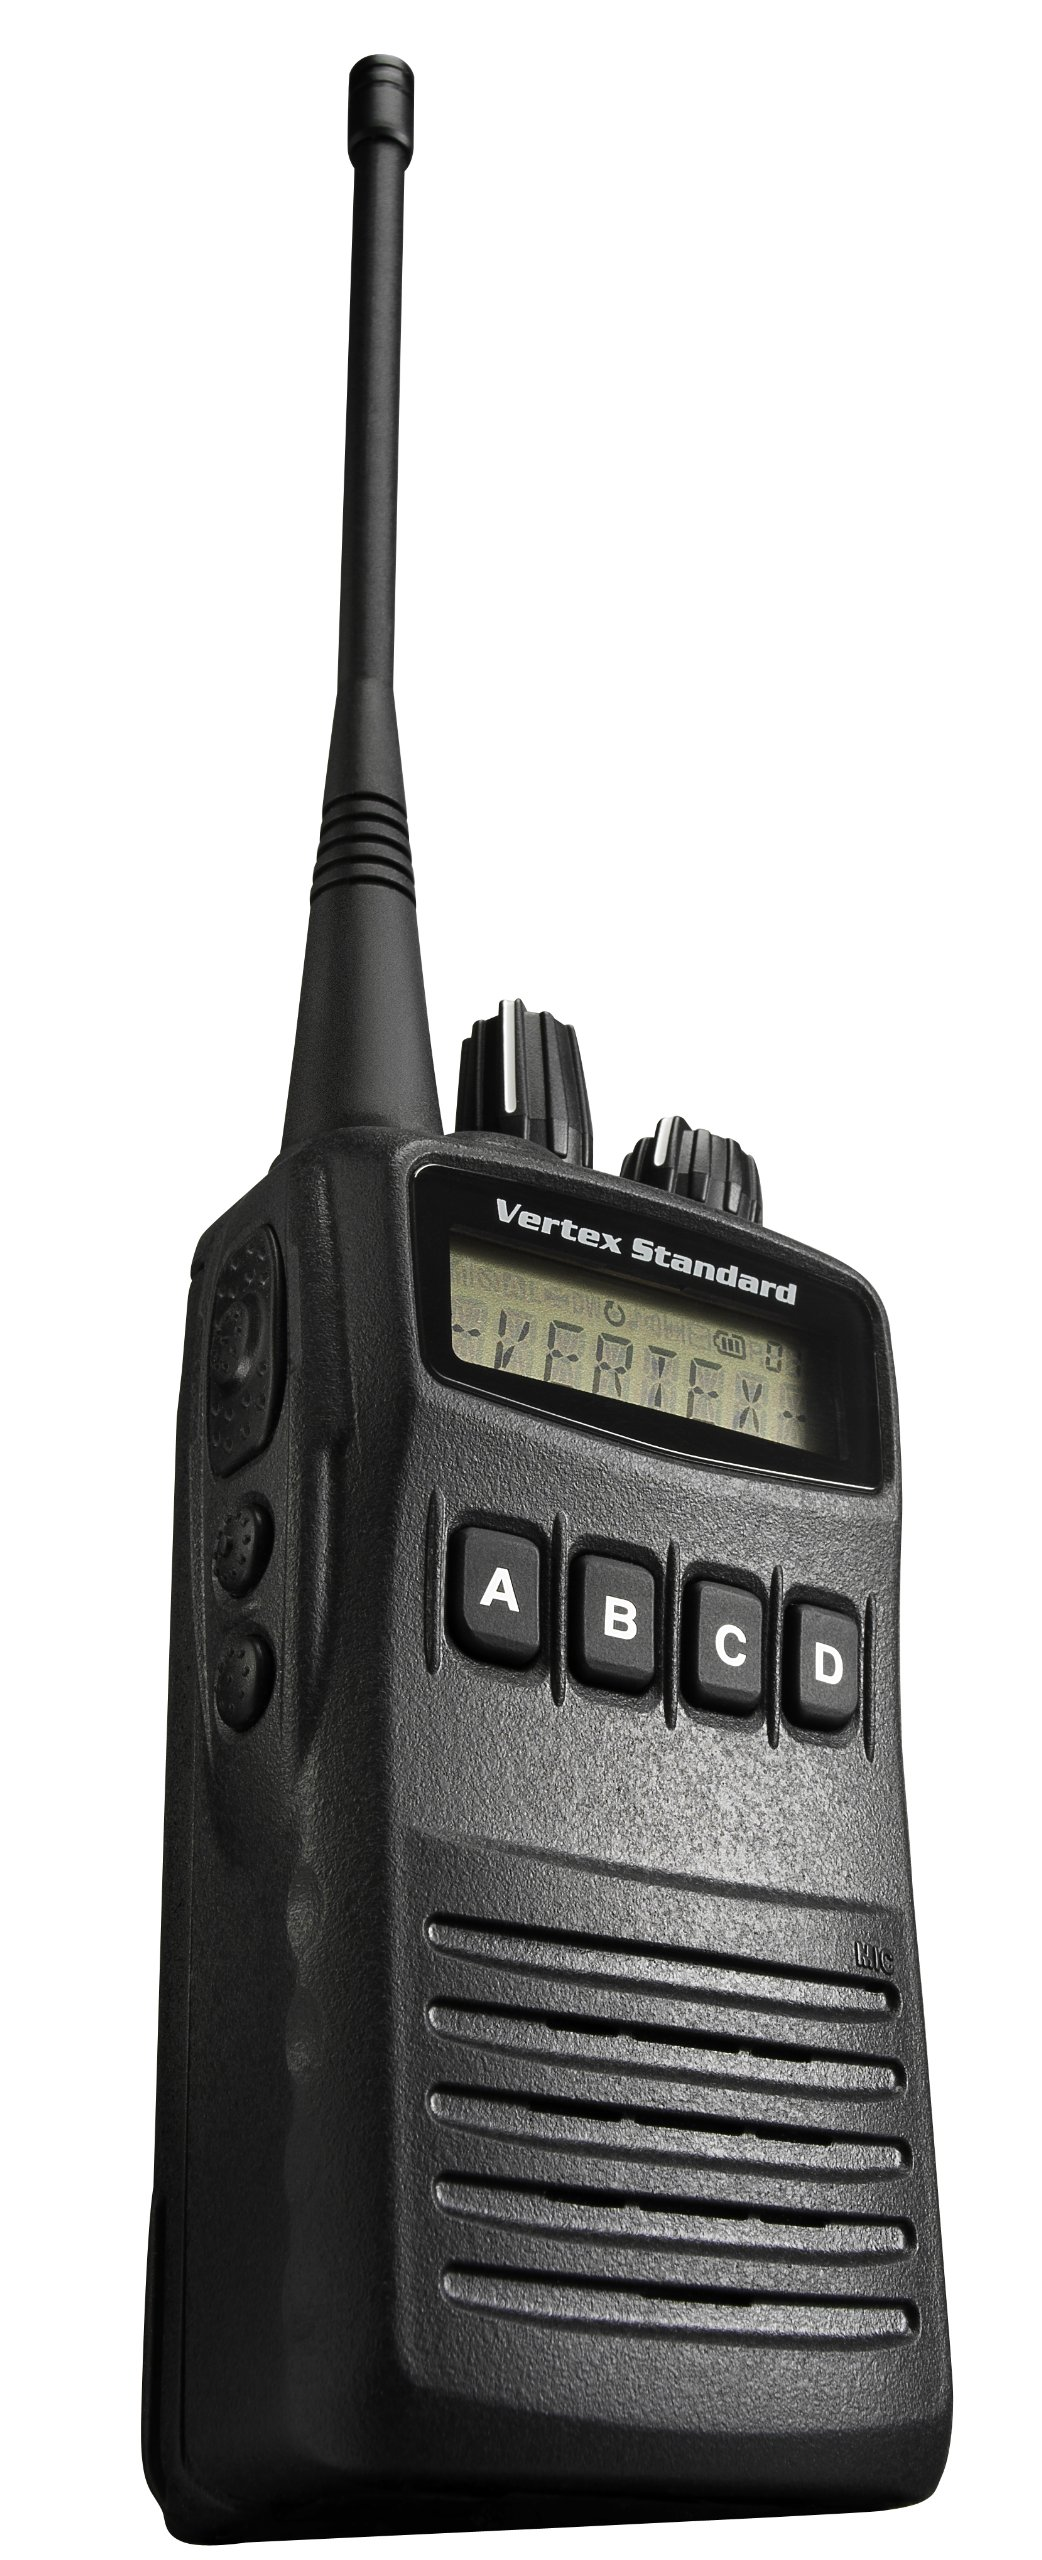 Vertex VX454-D0UN Business/Industrial Trunking Portable VHF Universal Radio Package with Display (Black)